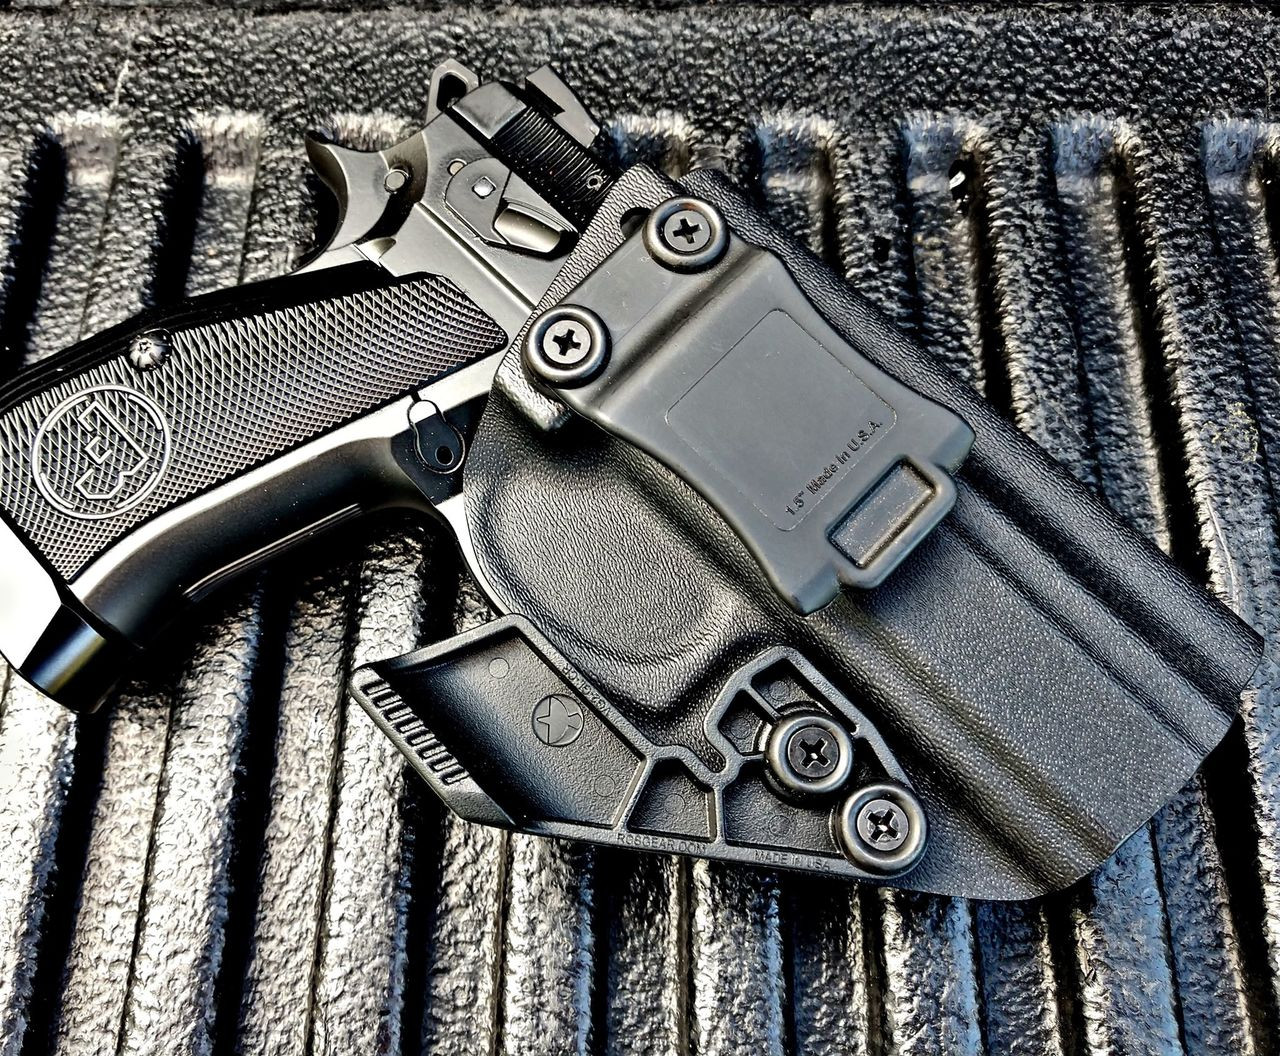 CZ P-01 Appendix Carry Kydex Holster